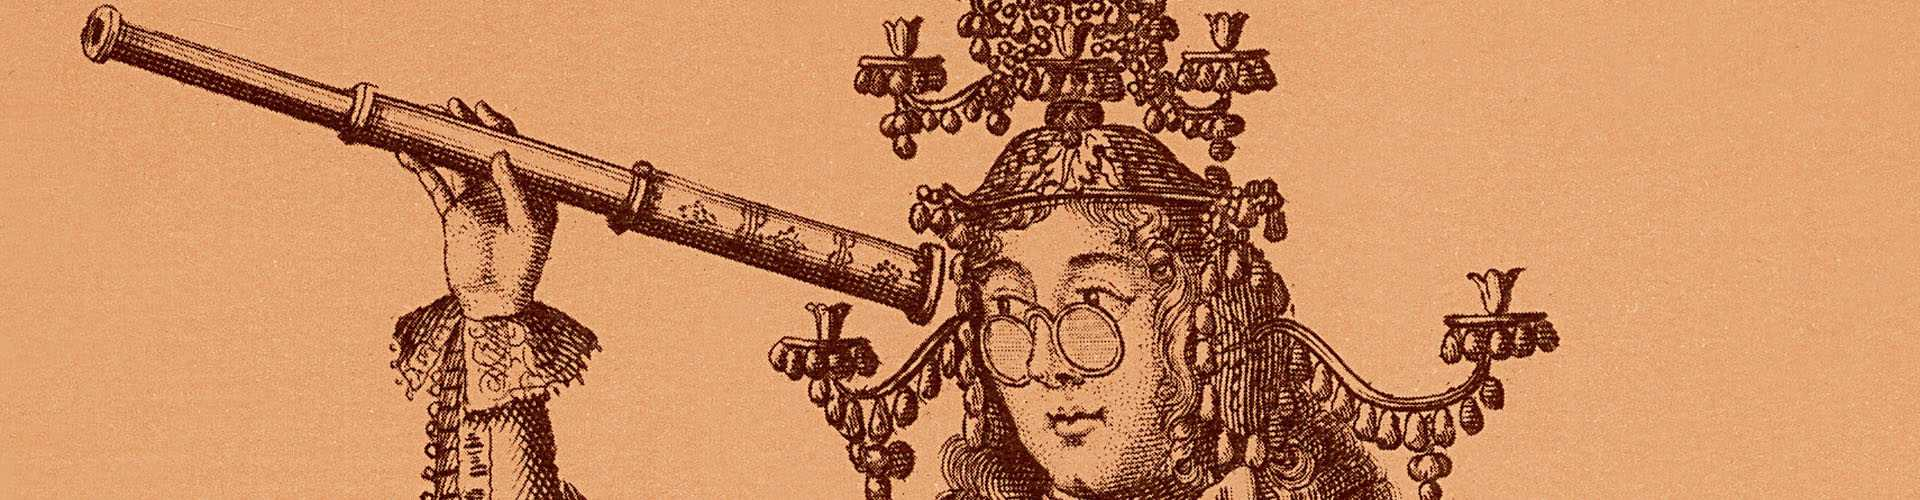 Glasses to See: Art, Science and Customs through the Evolution of Glasses